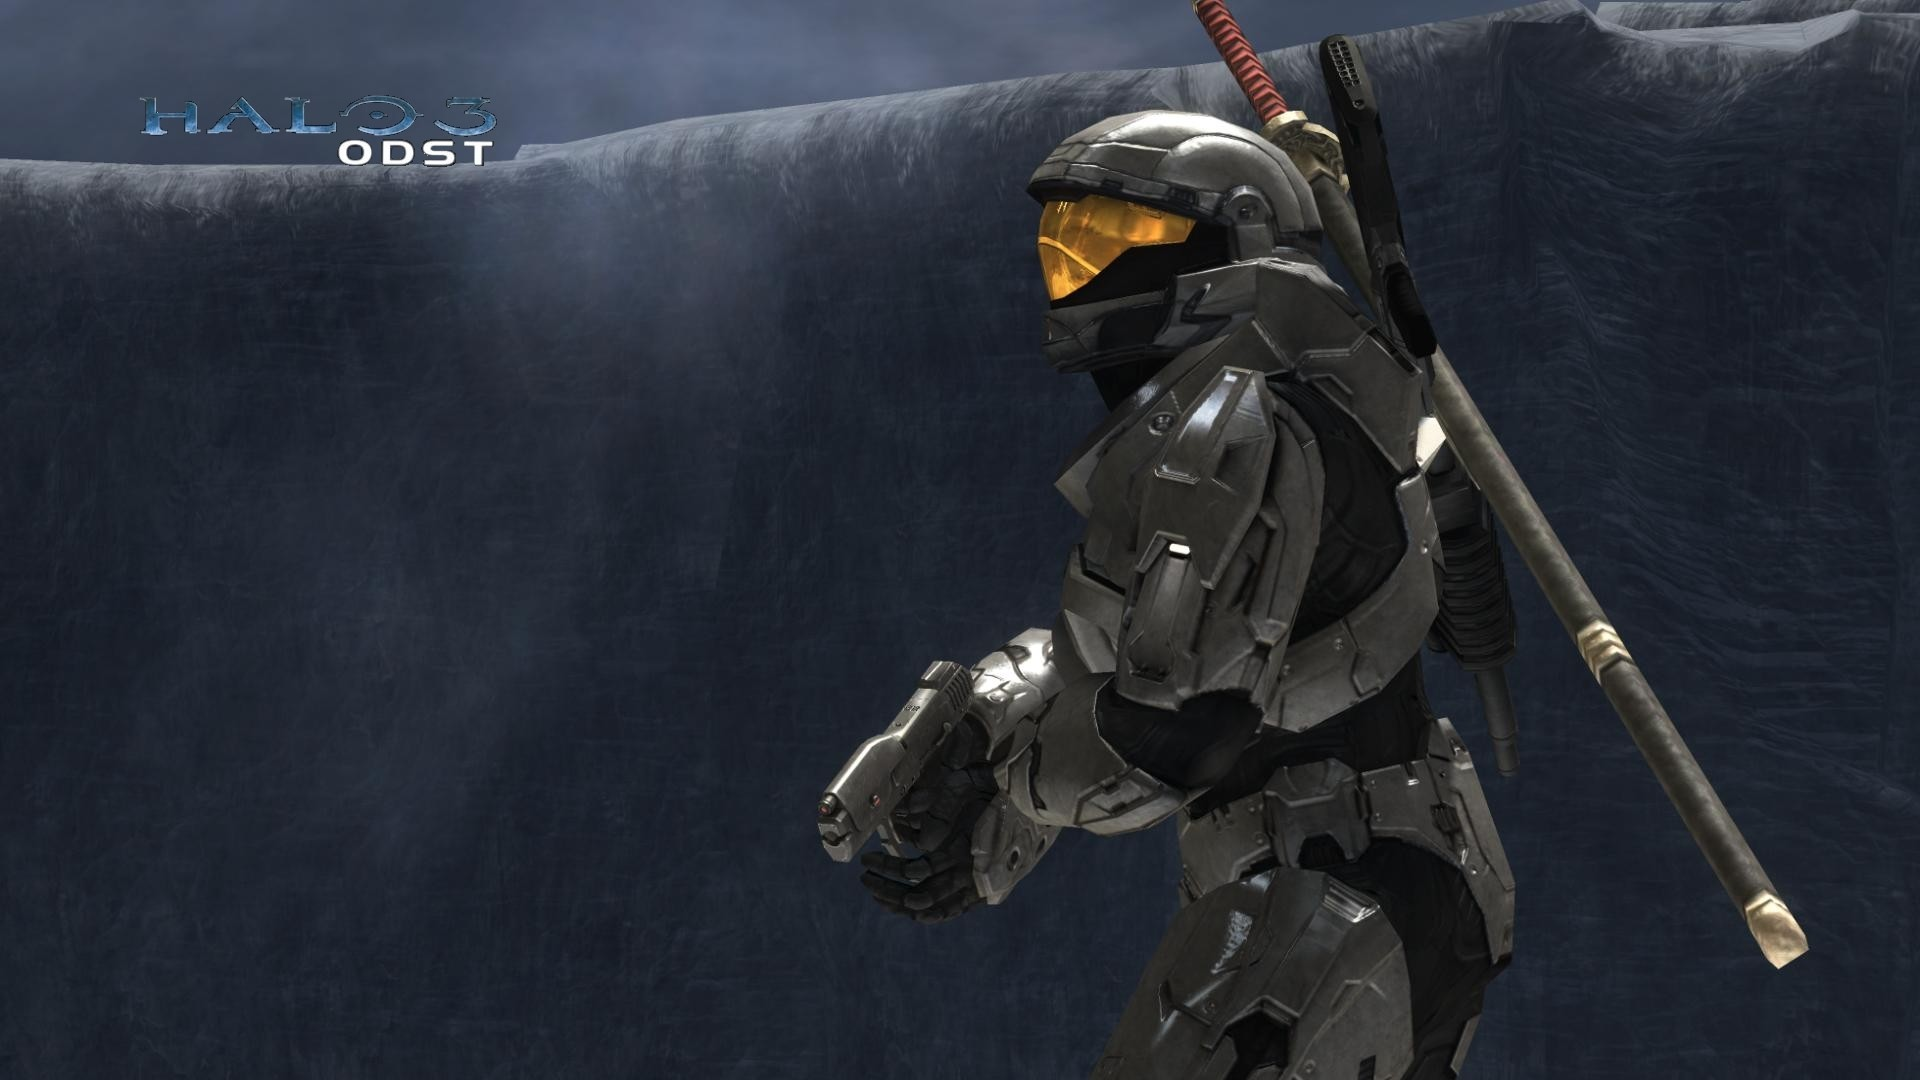 Res Source Halo 3 Odst S 1070874 Hd Wallpaper Backgrounds